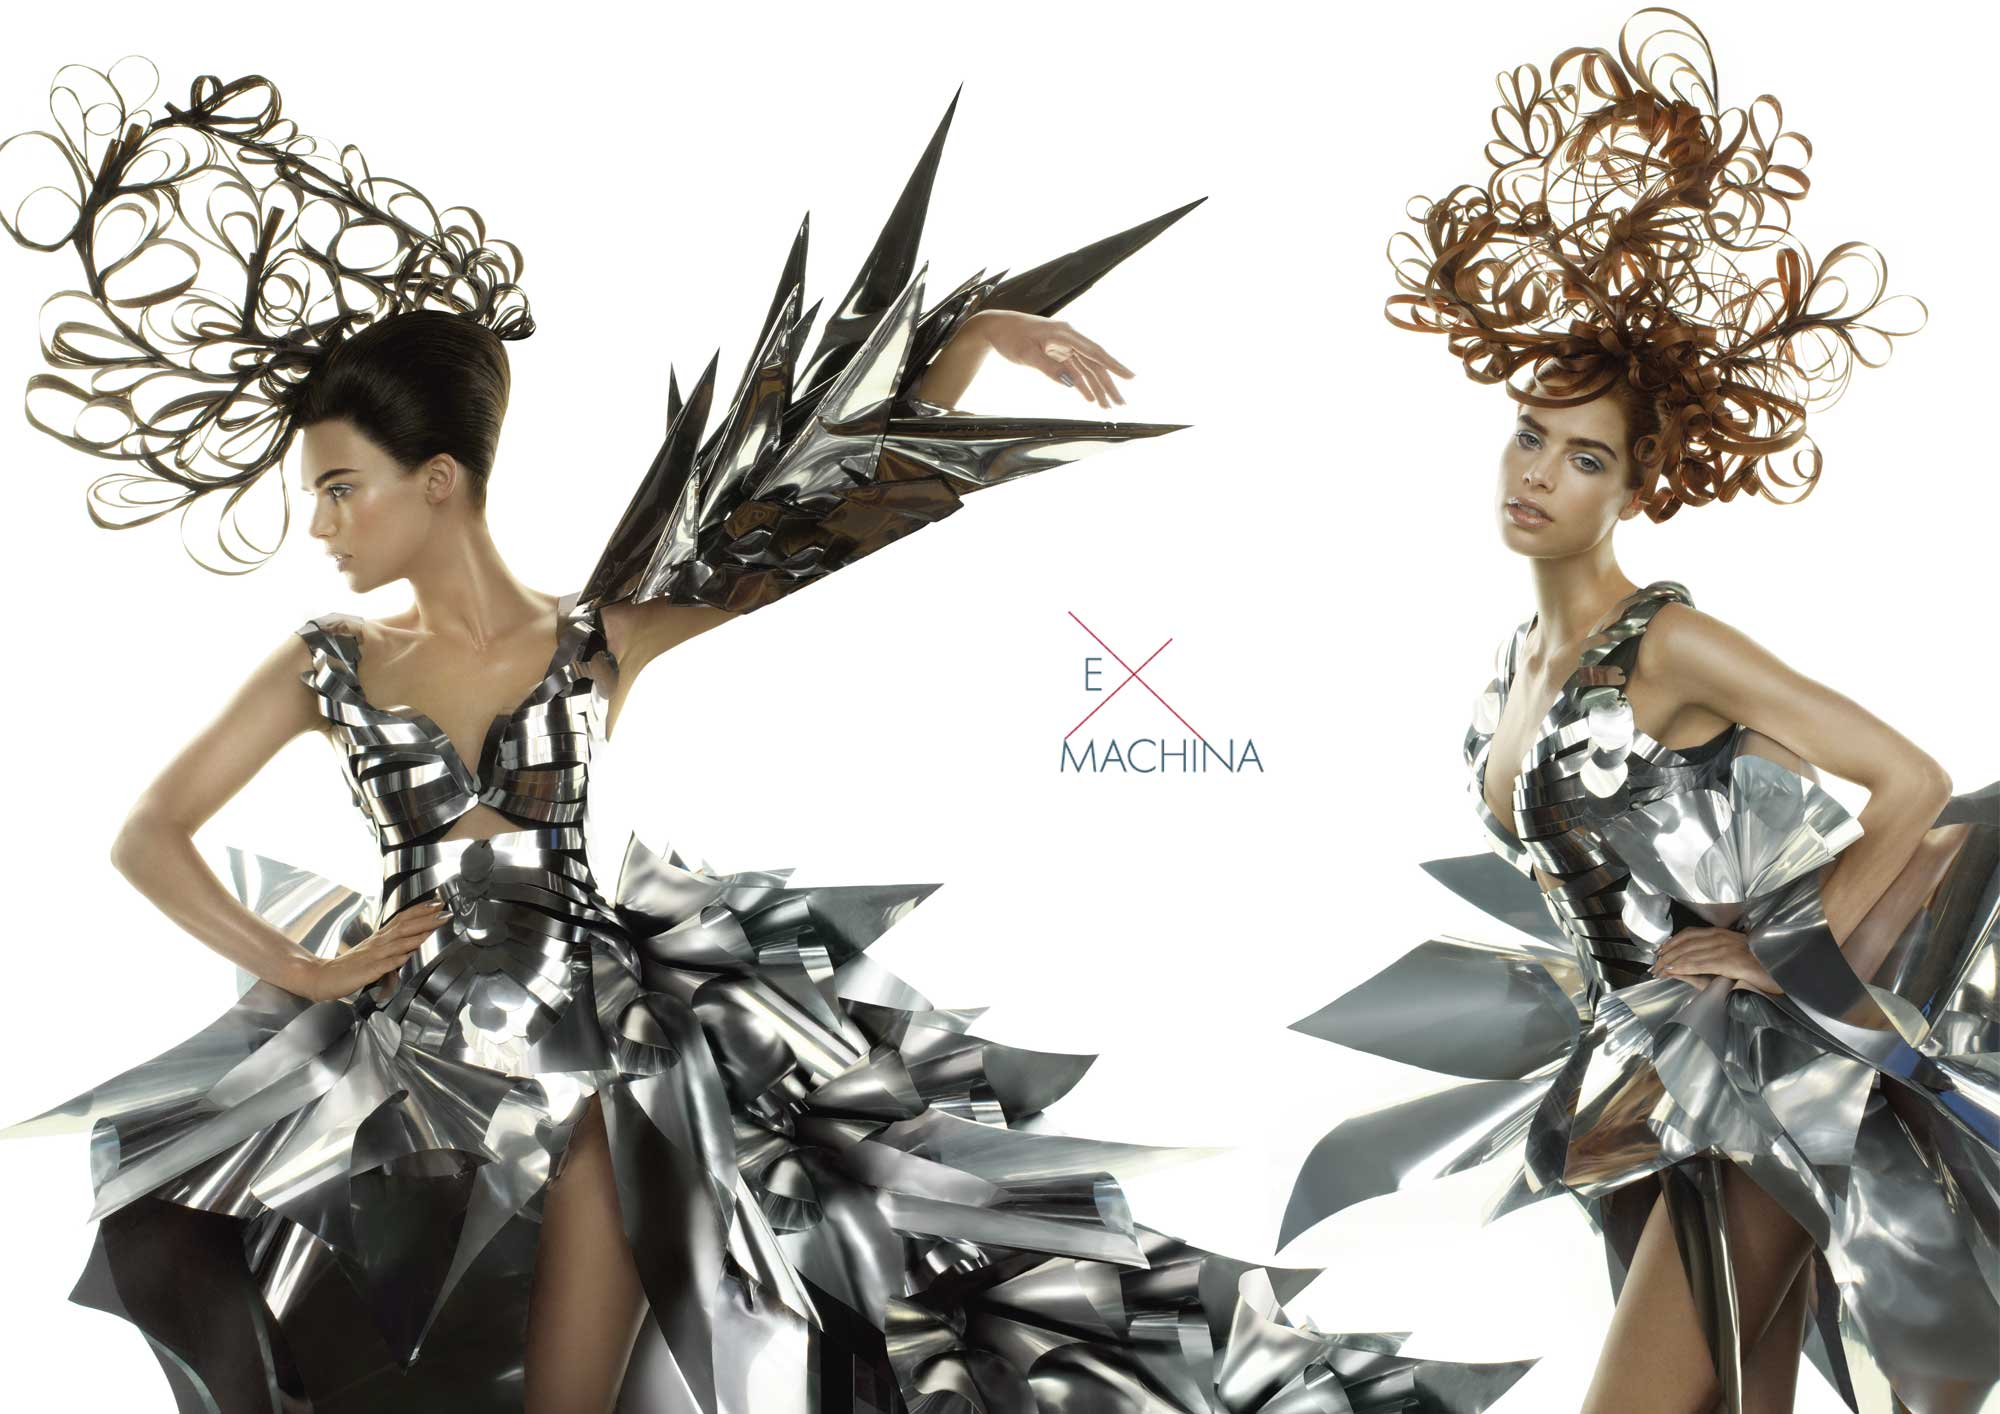 Hair: Chris Vandehey; Makeup: Wanda Alvarez; Fashion: Rocky Gathercole. Photography by Luis Alvarez for Aquage